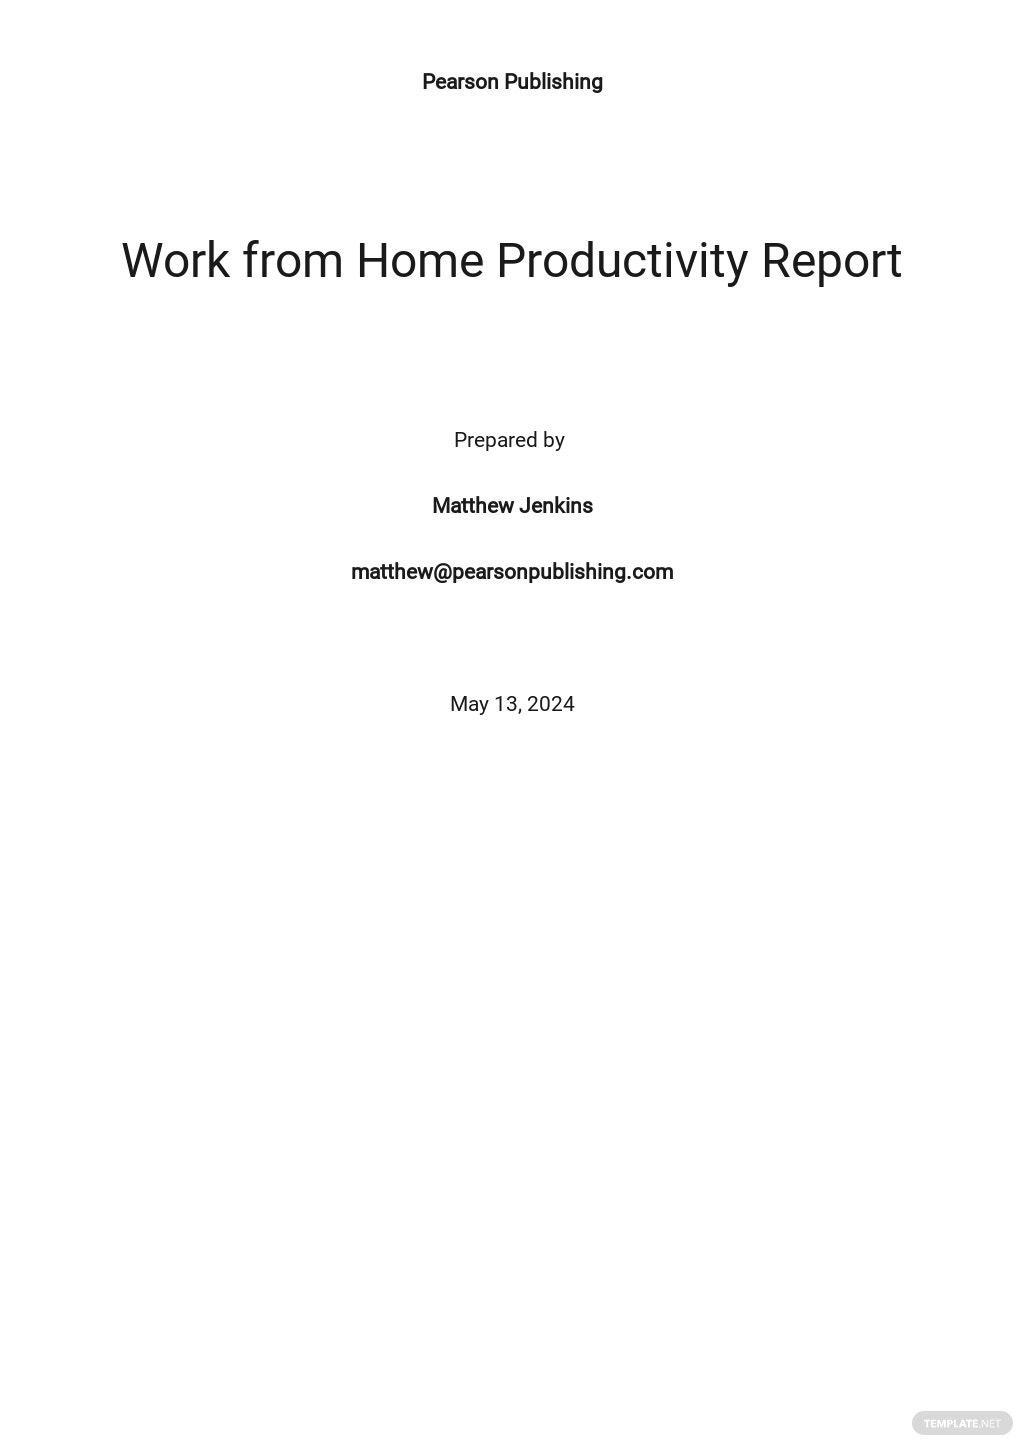 Work From Home Productivity Report Template.jpe